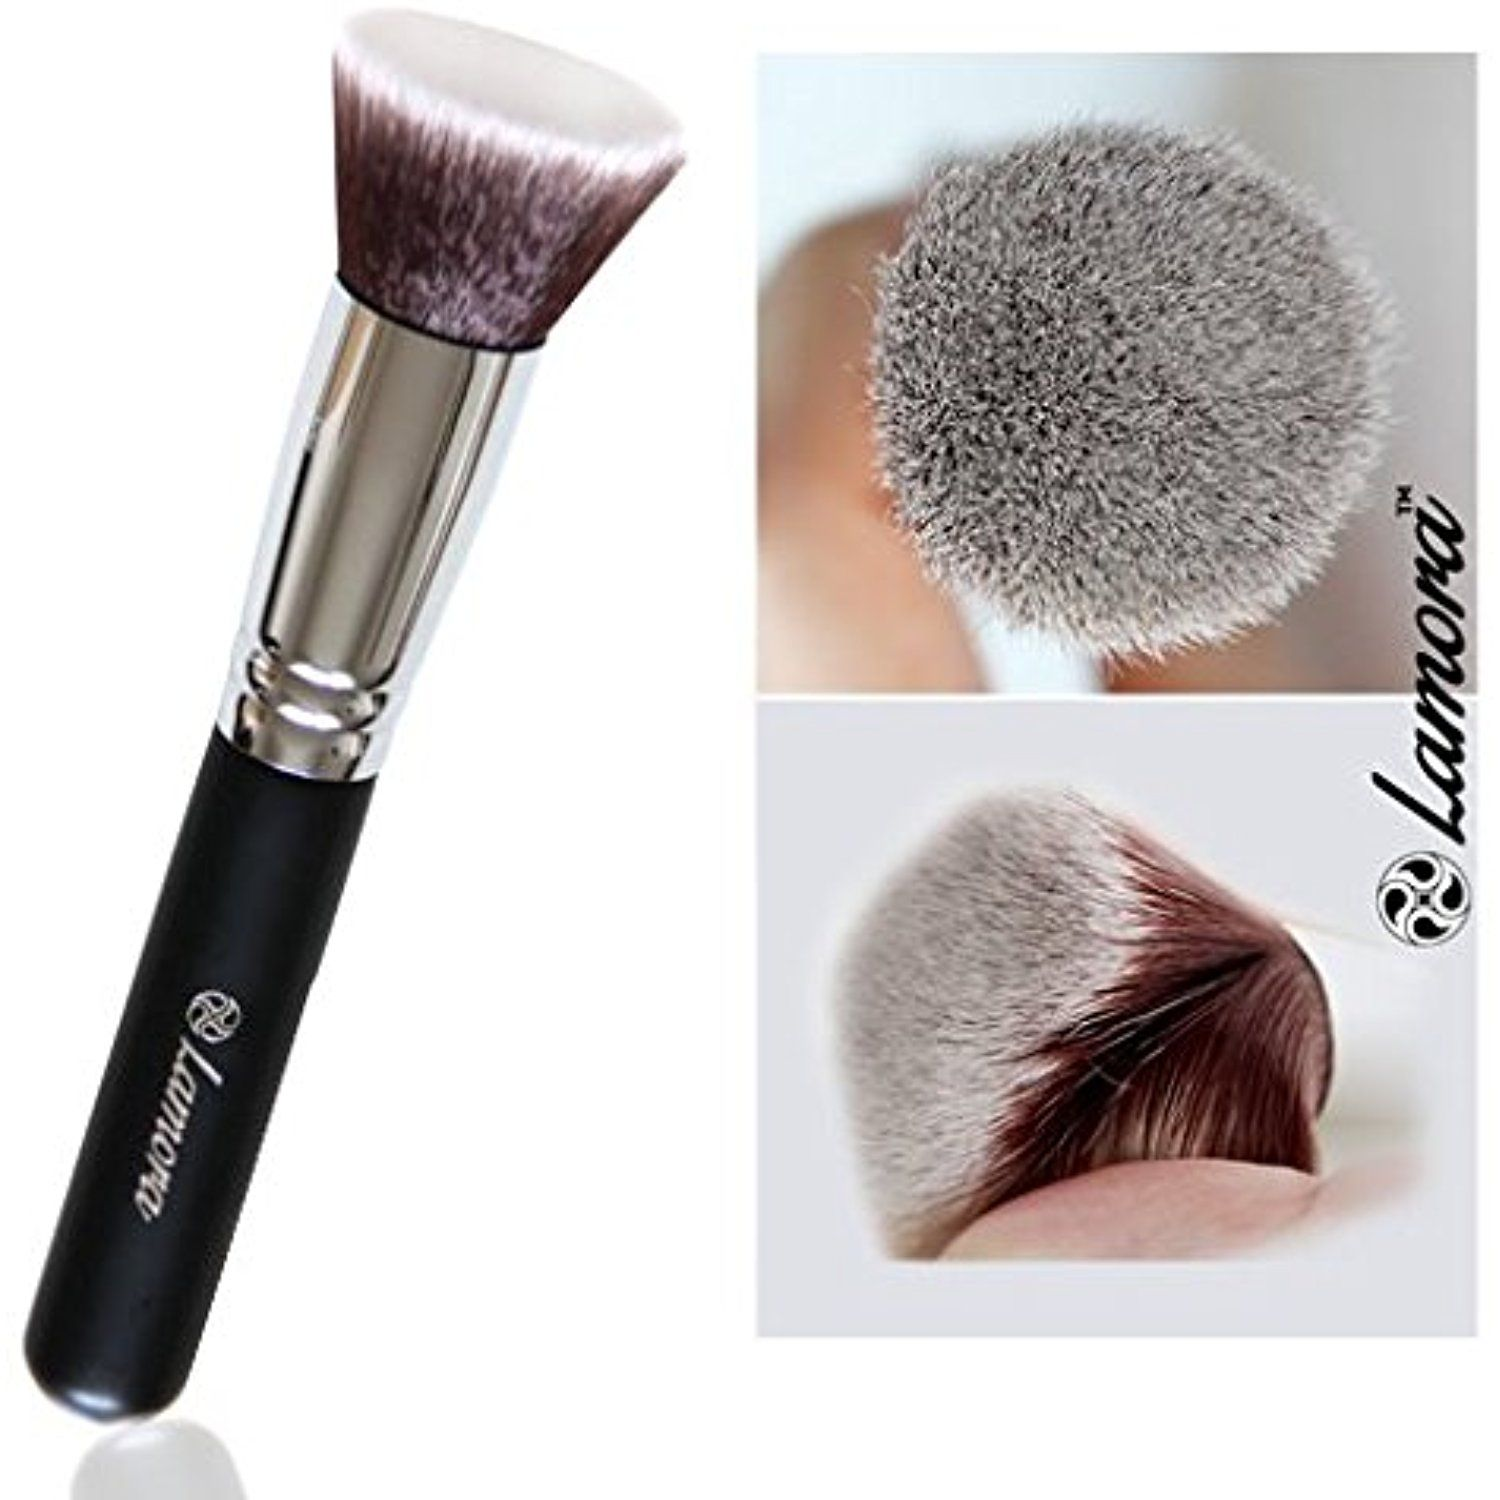 Foundation Makeup Brush Flat Top Kabuki for Face Perfect